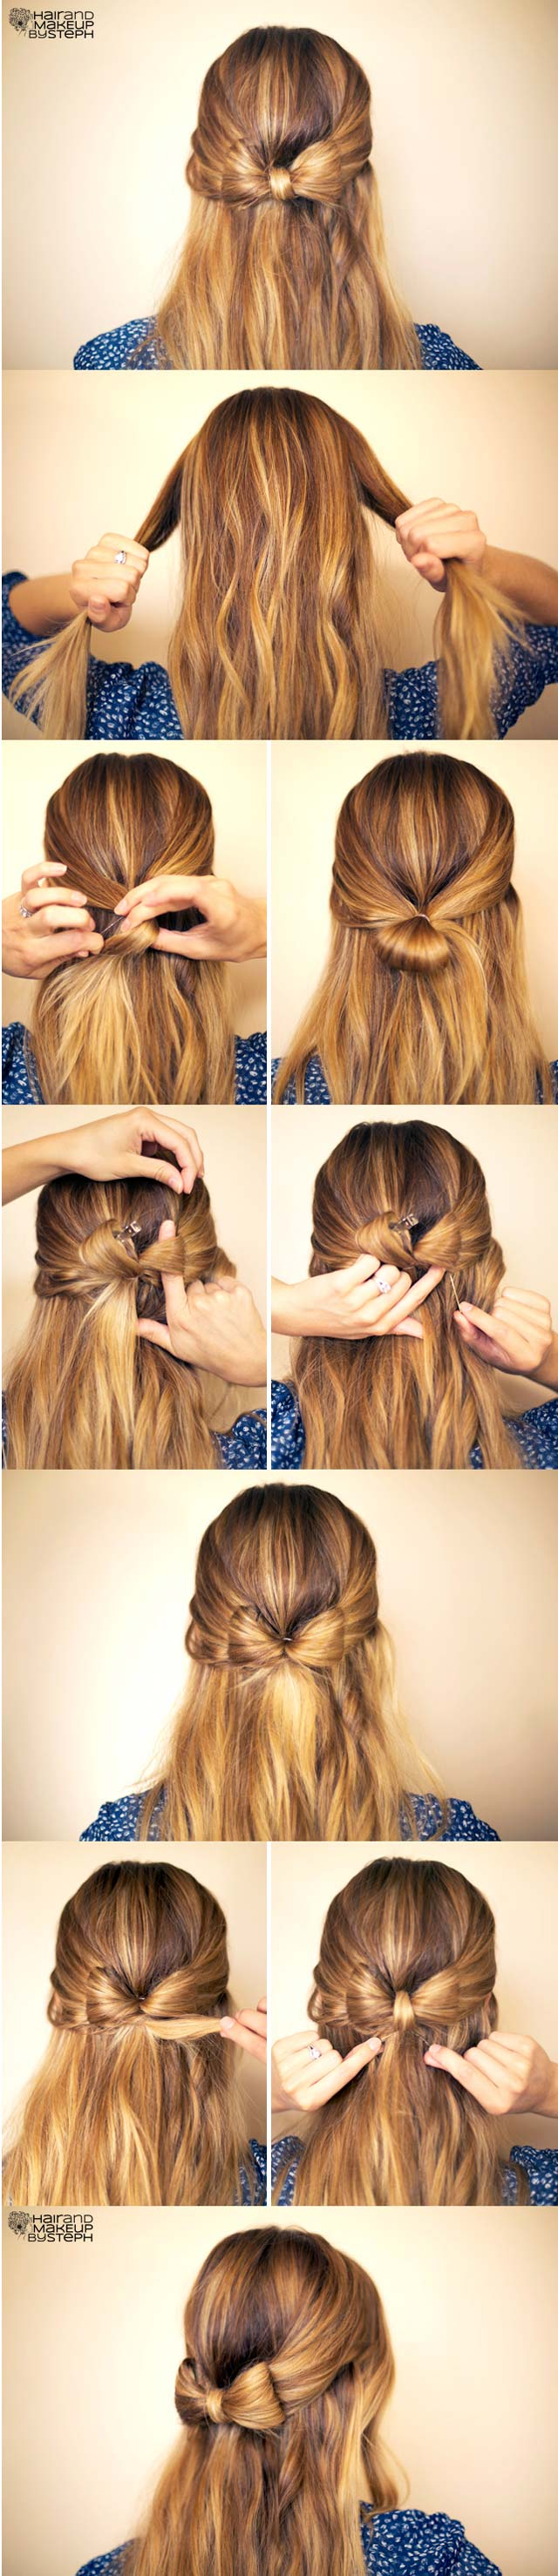 How To Do Cute And Easy Hairstyles For Long Hair